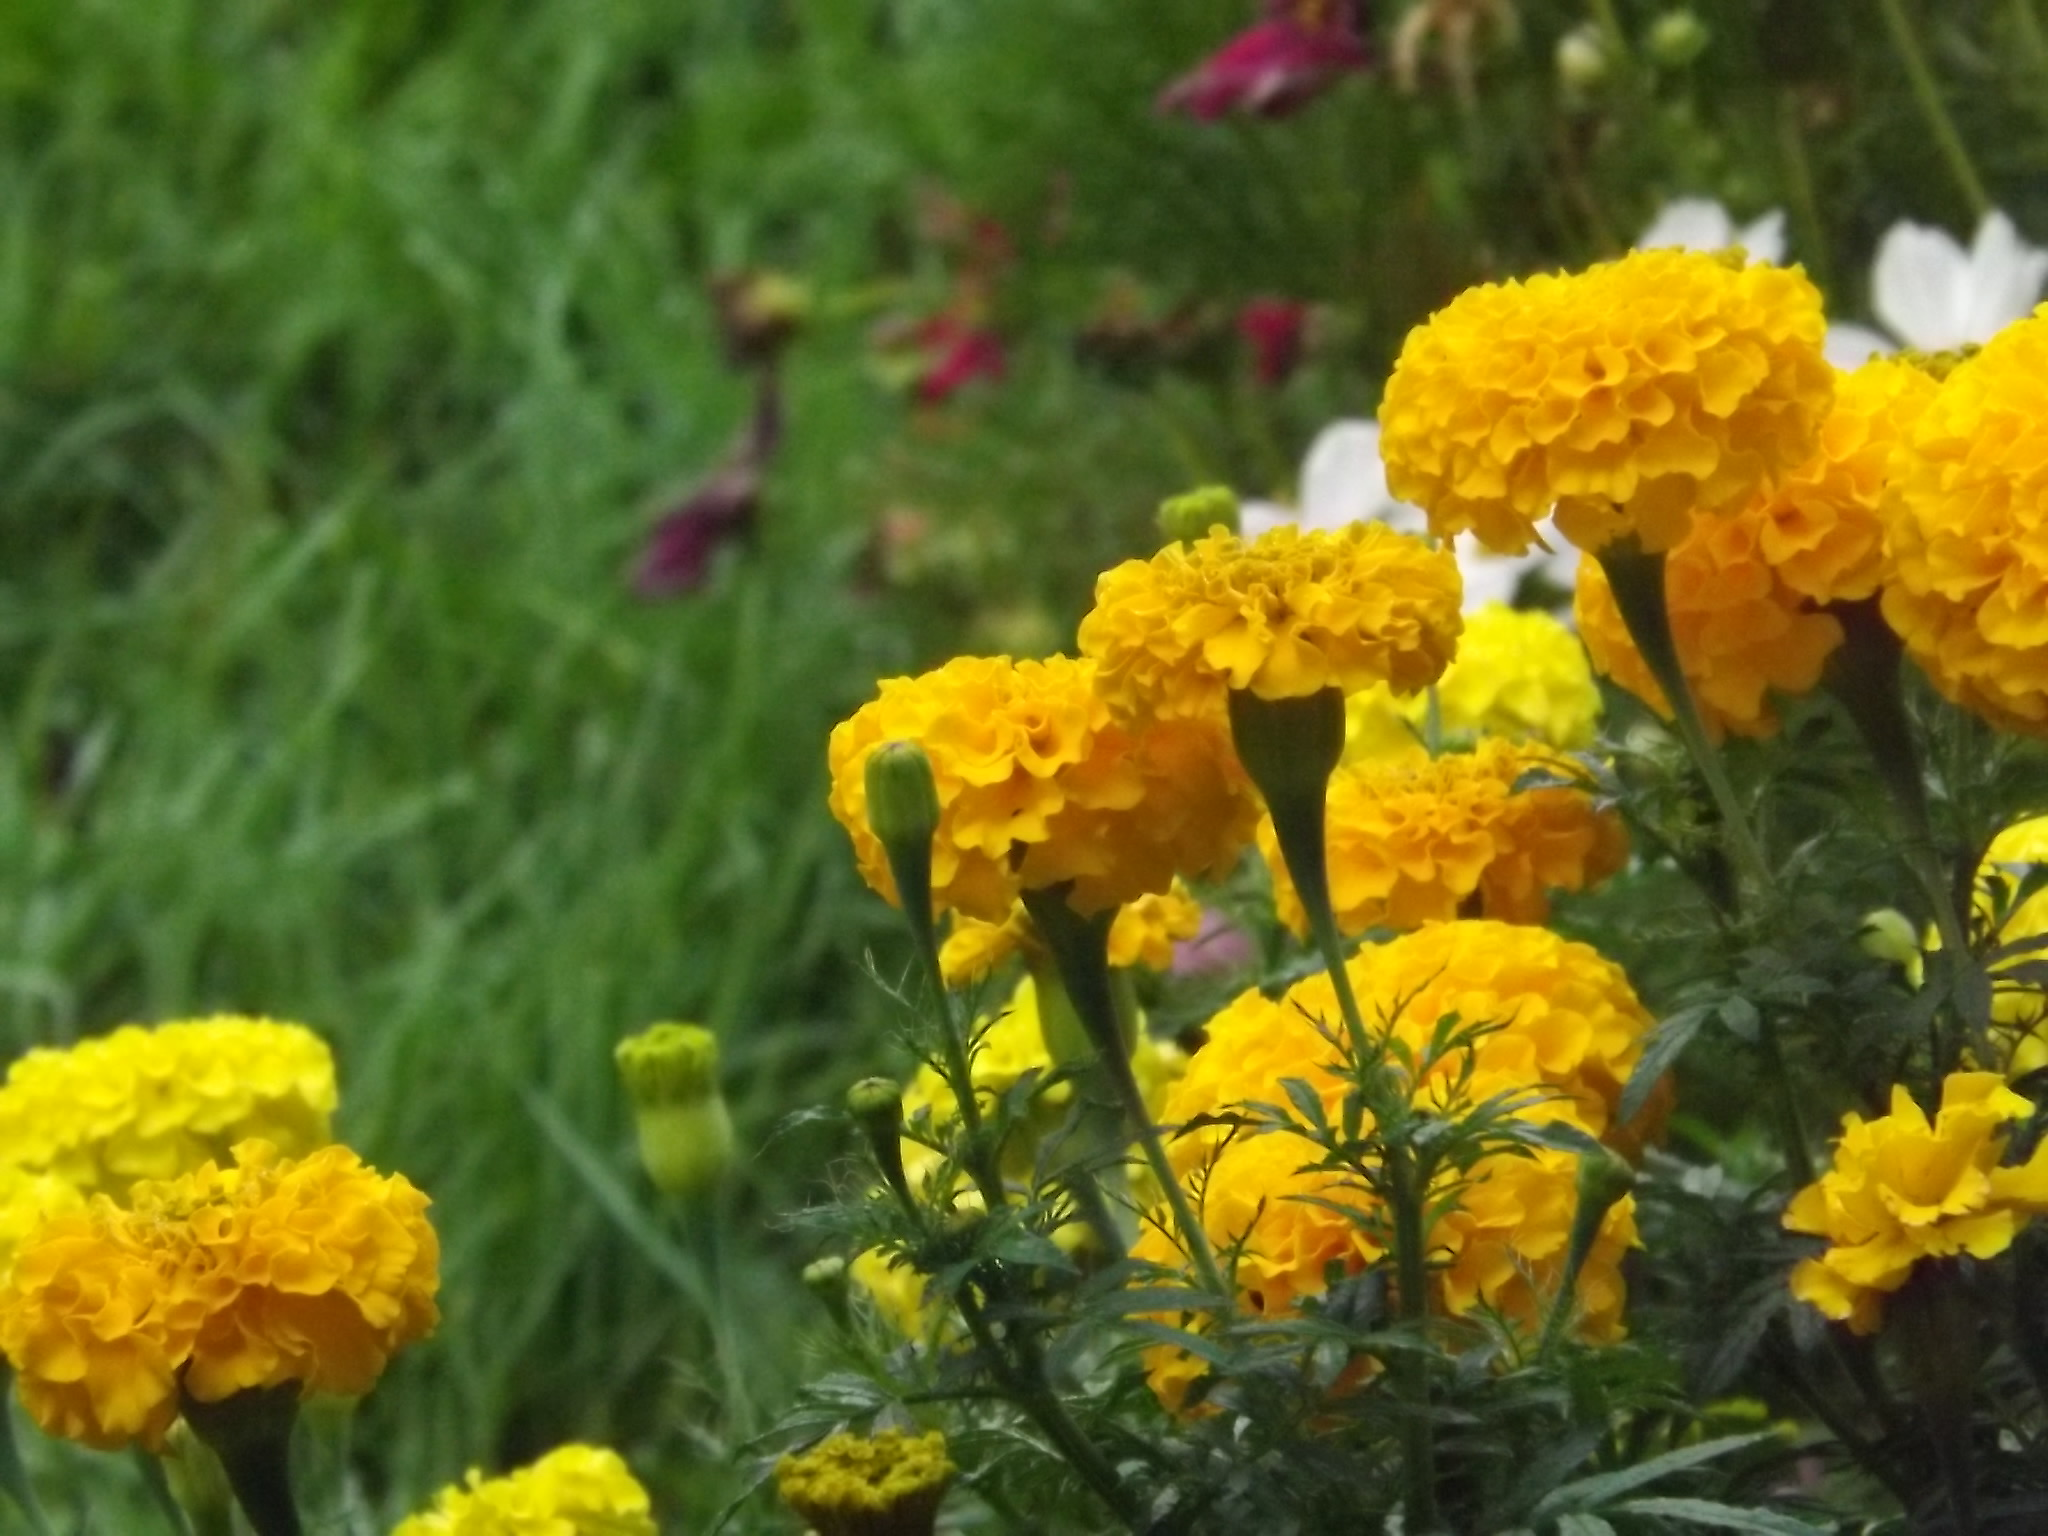 Giant Marigolds, yellow, and Cosmos, White